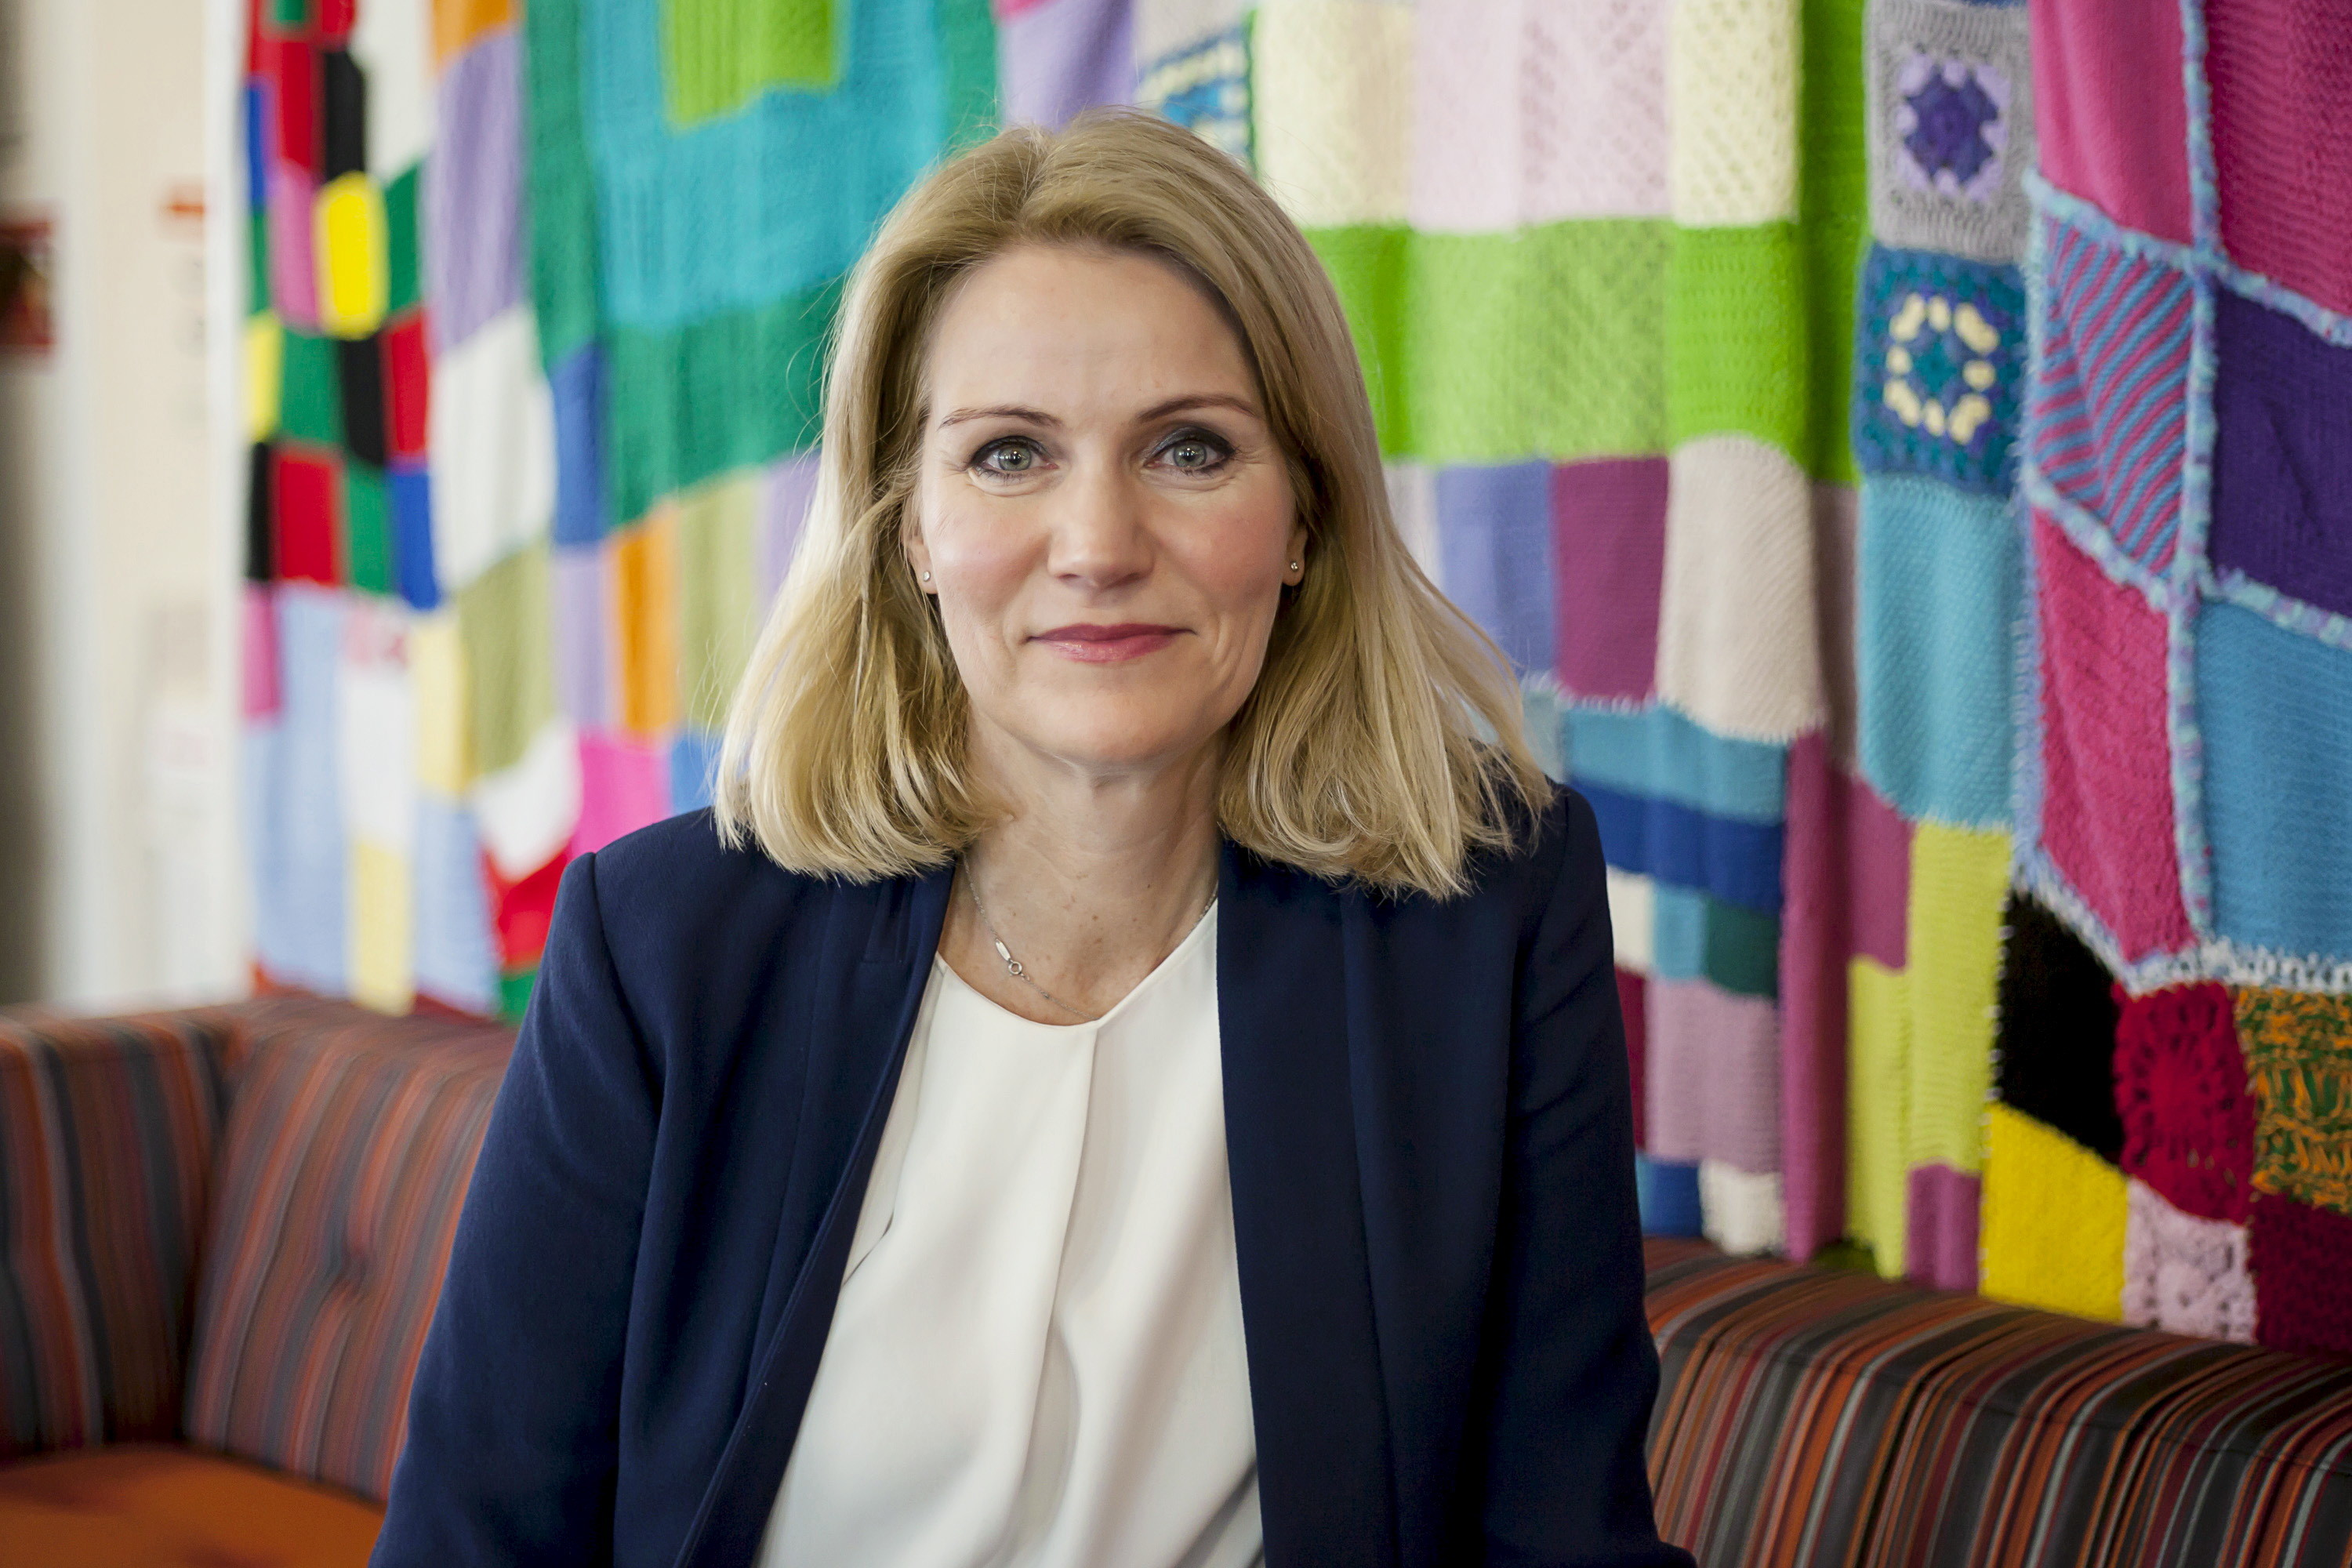 Helle Thorning-Schmidt, newly appointed CEO of Save the Children International, poses for a portrait at the office of the children's charity in central London, April 21, 2016.  Thomson Reuters Foundation/Shanshan Chen  - RTX2BMI7